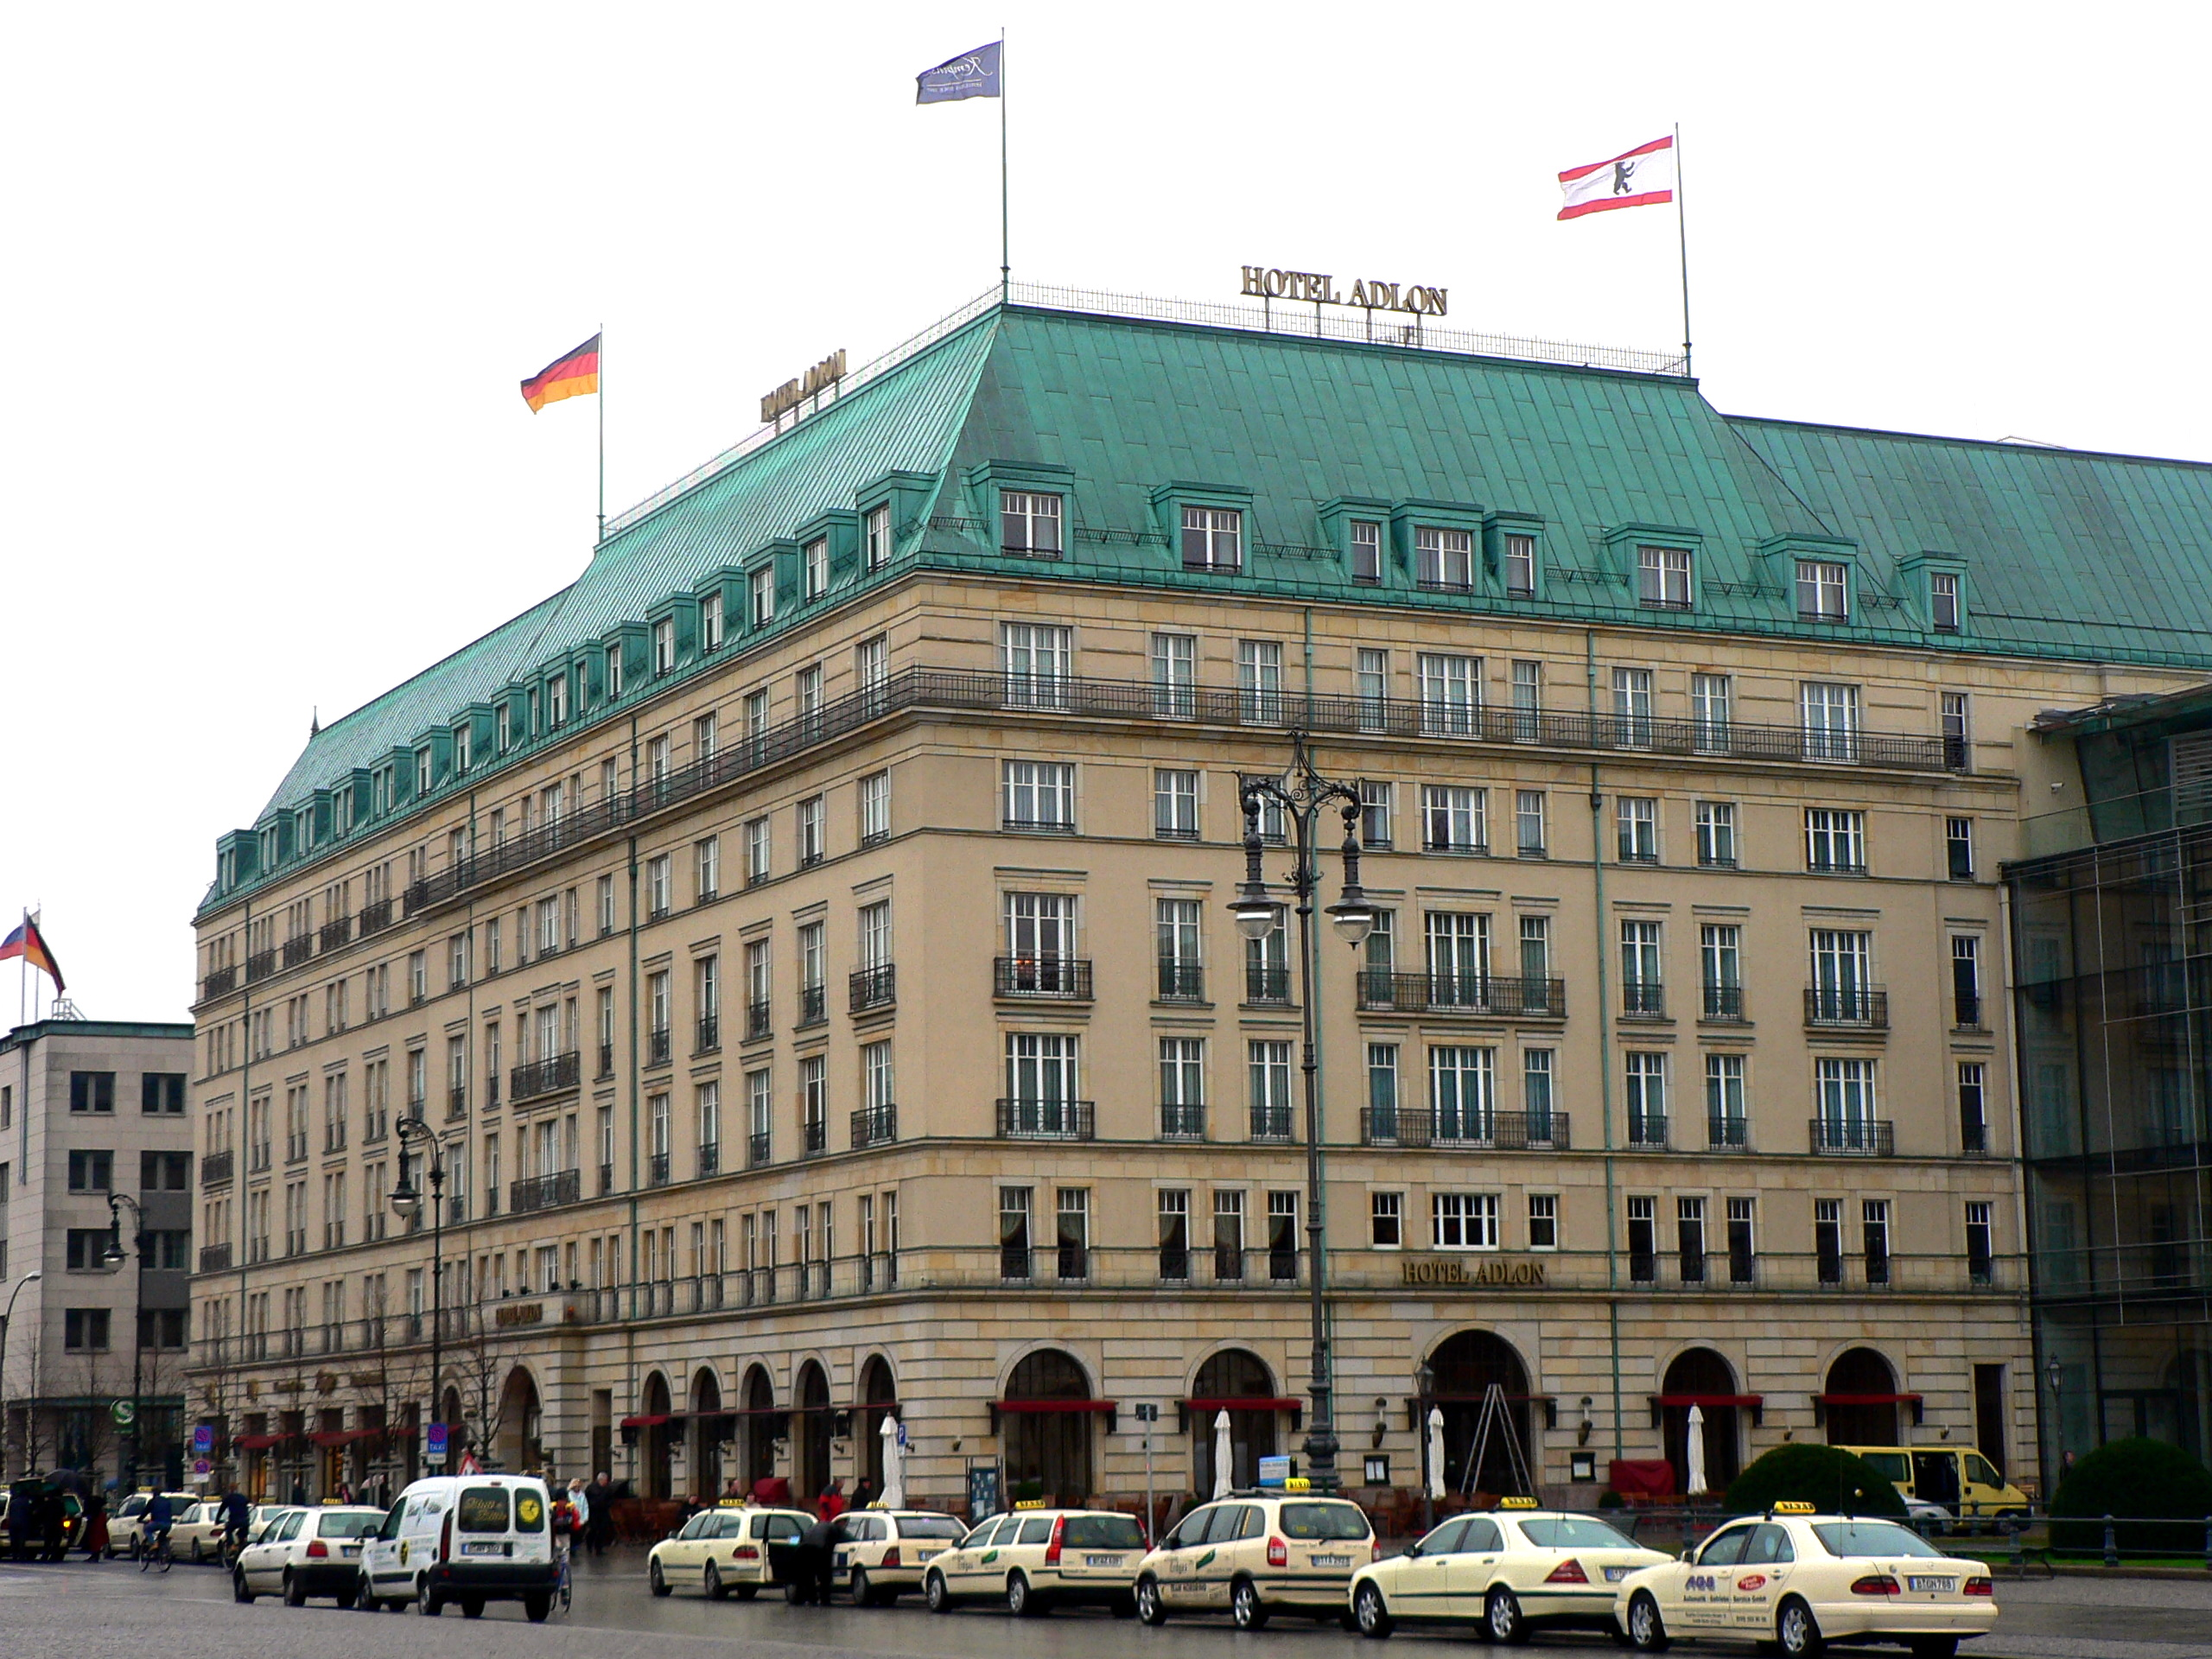 Hotels In Berlin Chekpoint Charlie